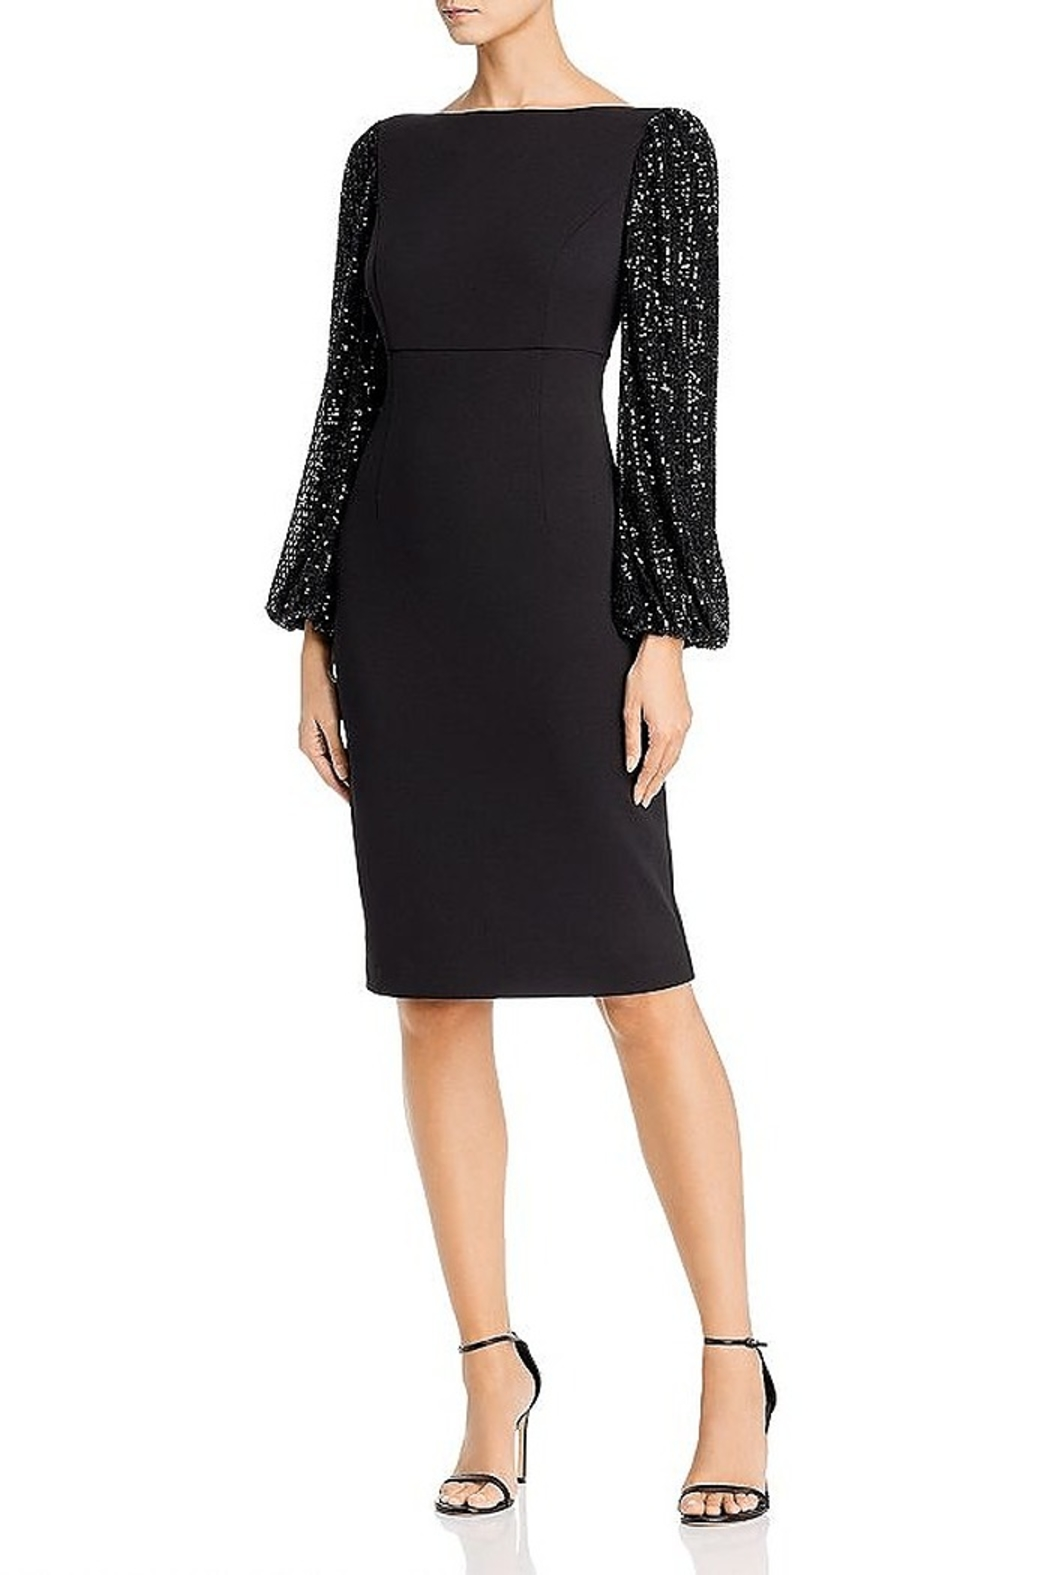 Eliza J Sequin Balloon Sleeve Sheath Dress - Front Cropped Image